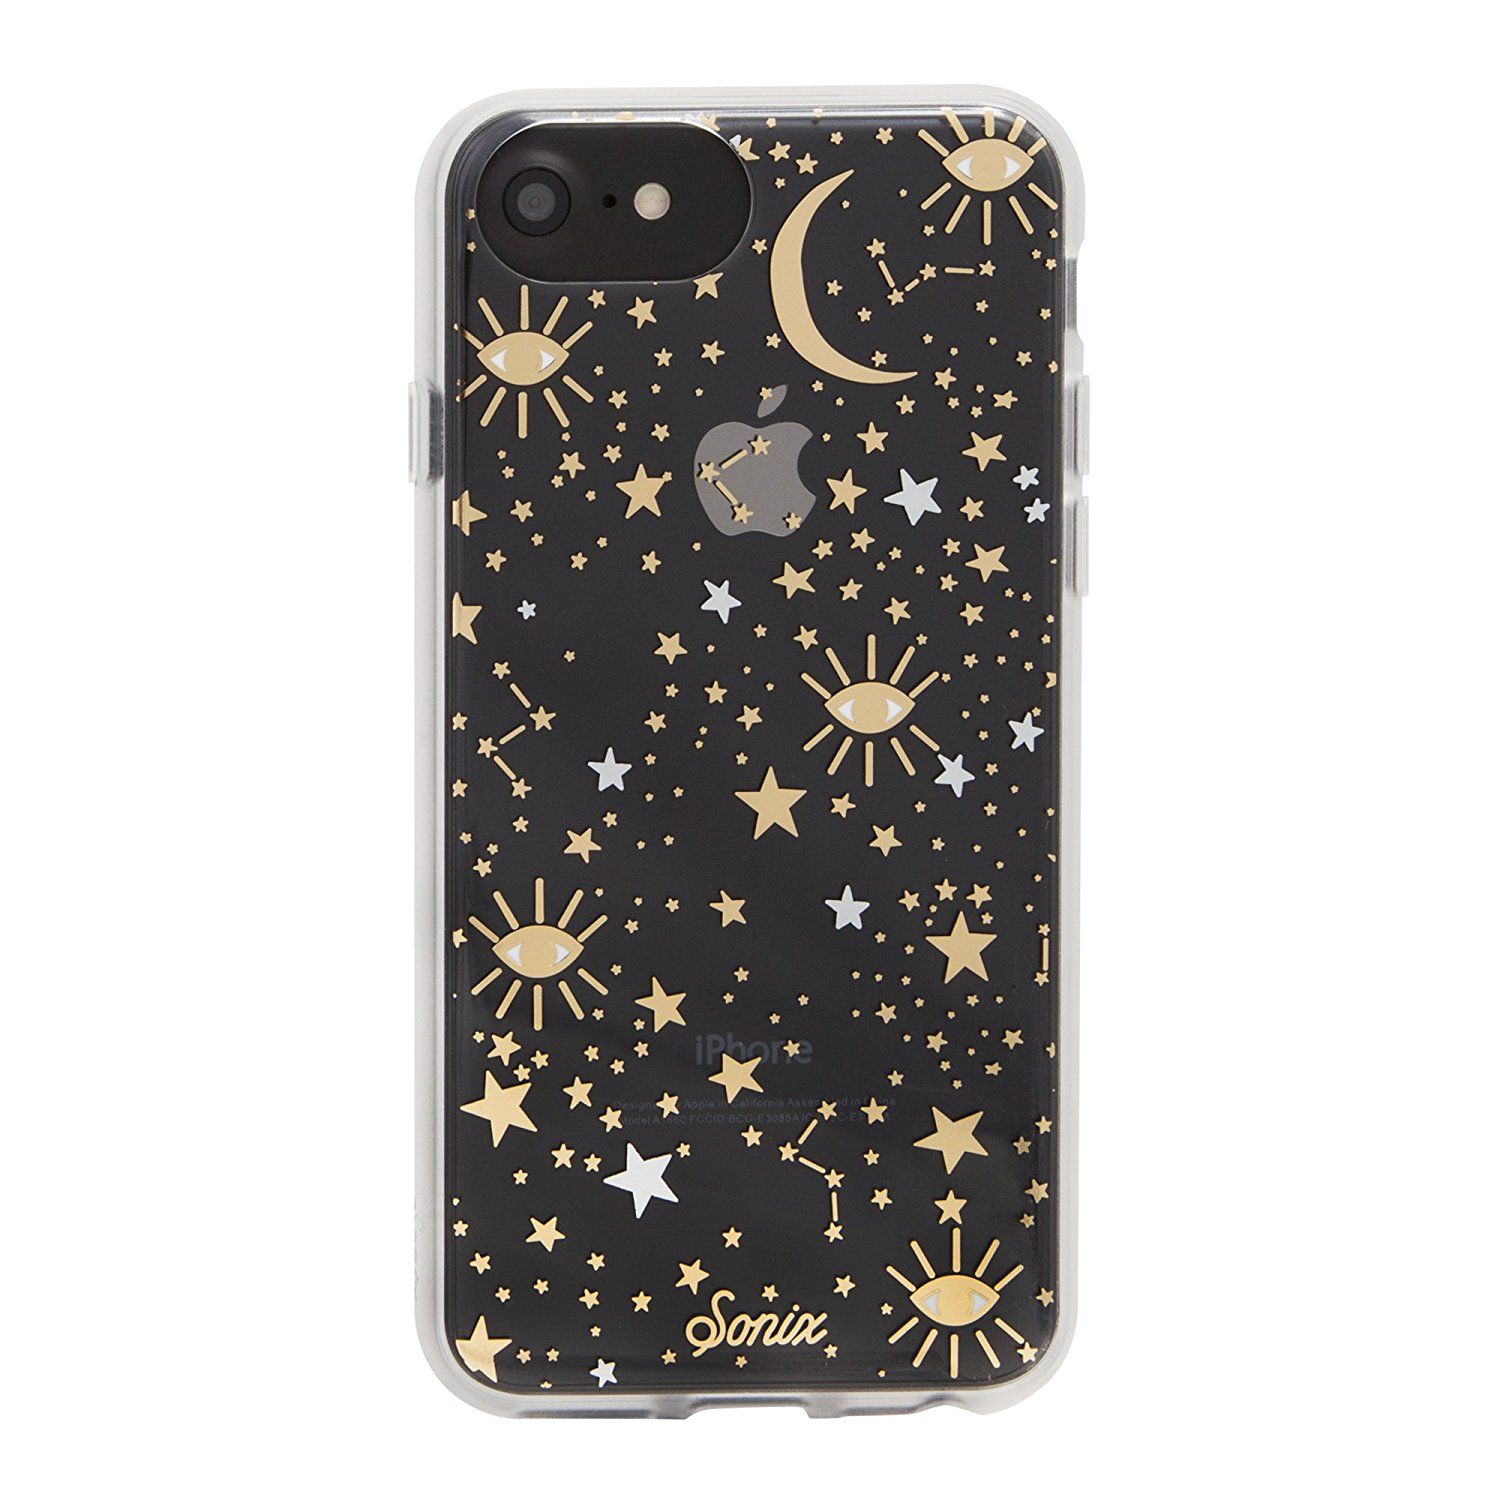 47bb67b25d iPhone 8 / iPhone 7 / iPhone 6, Sonix COSMIC (stars, gold/silver) Cell  Phone Case -Drop Test Certified -Retail Packaging - Sonix Clear Case for  Apple (4.7